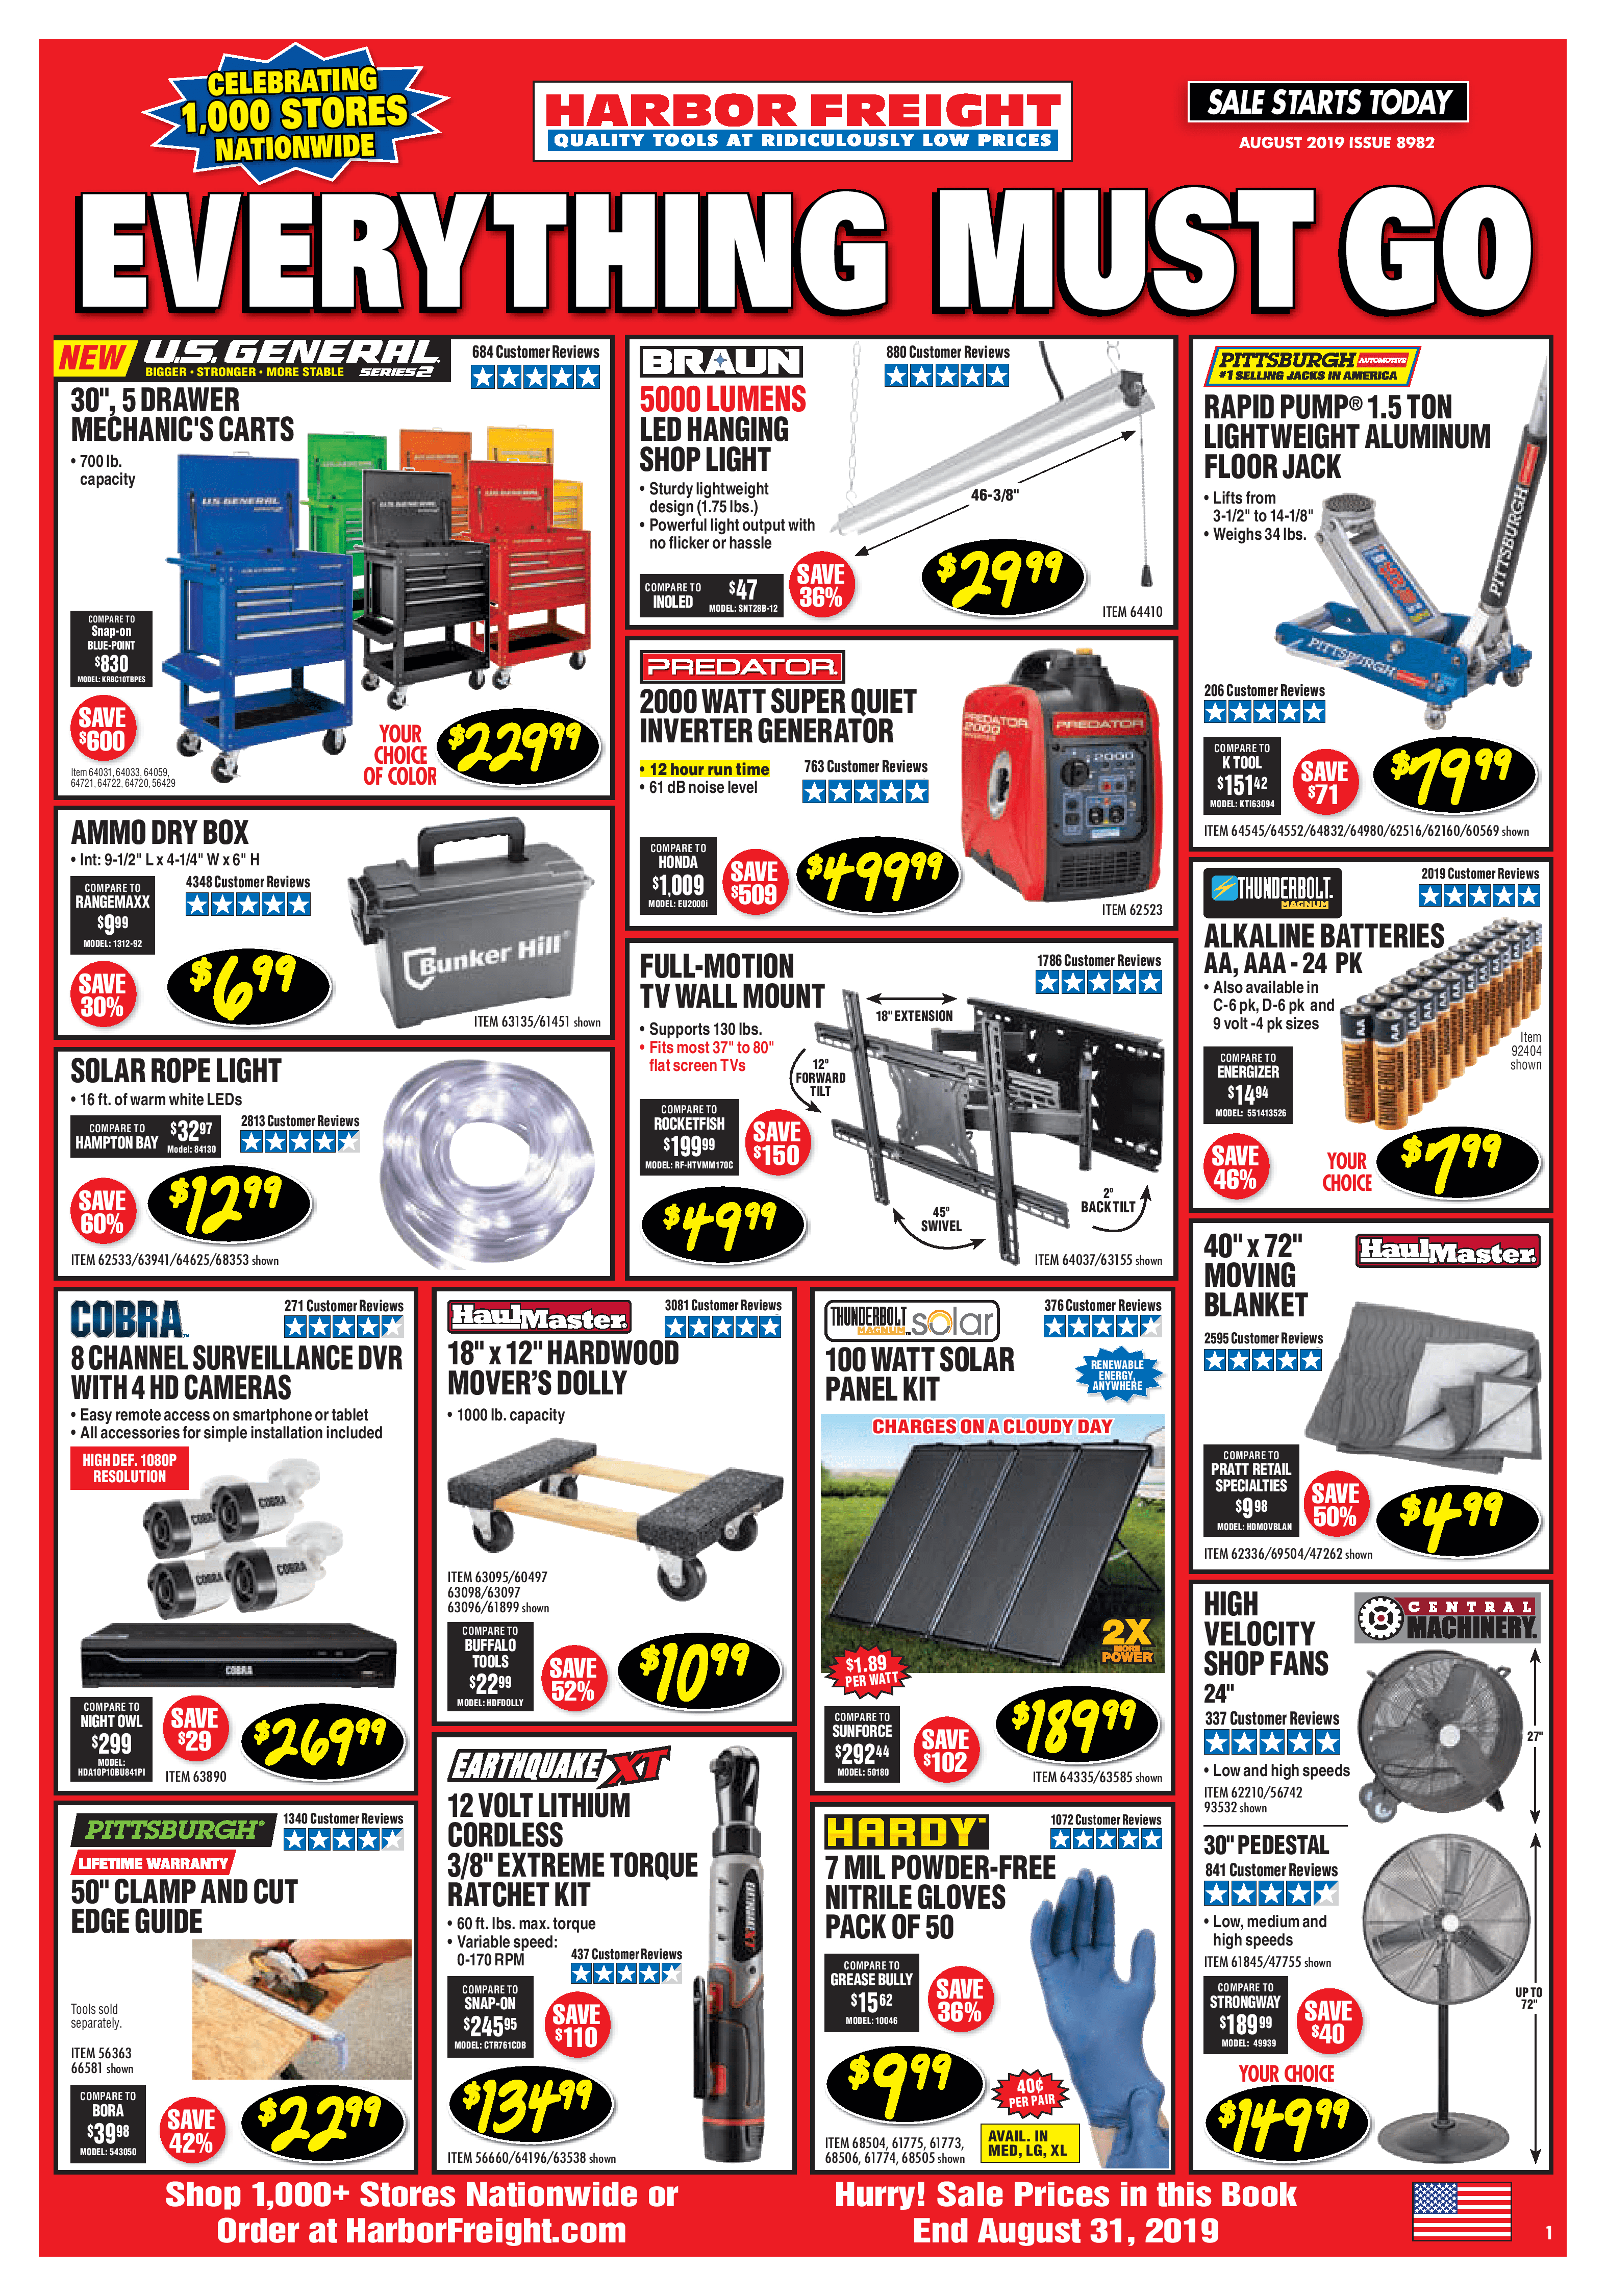 Harbor Freight Flyer And Monthly Ad August 2019 Harbor Freight Tools Harbor Freight Coupon Flyer